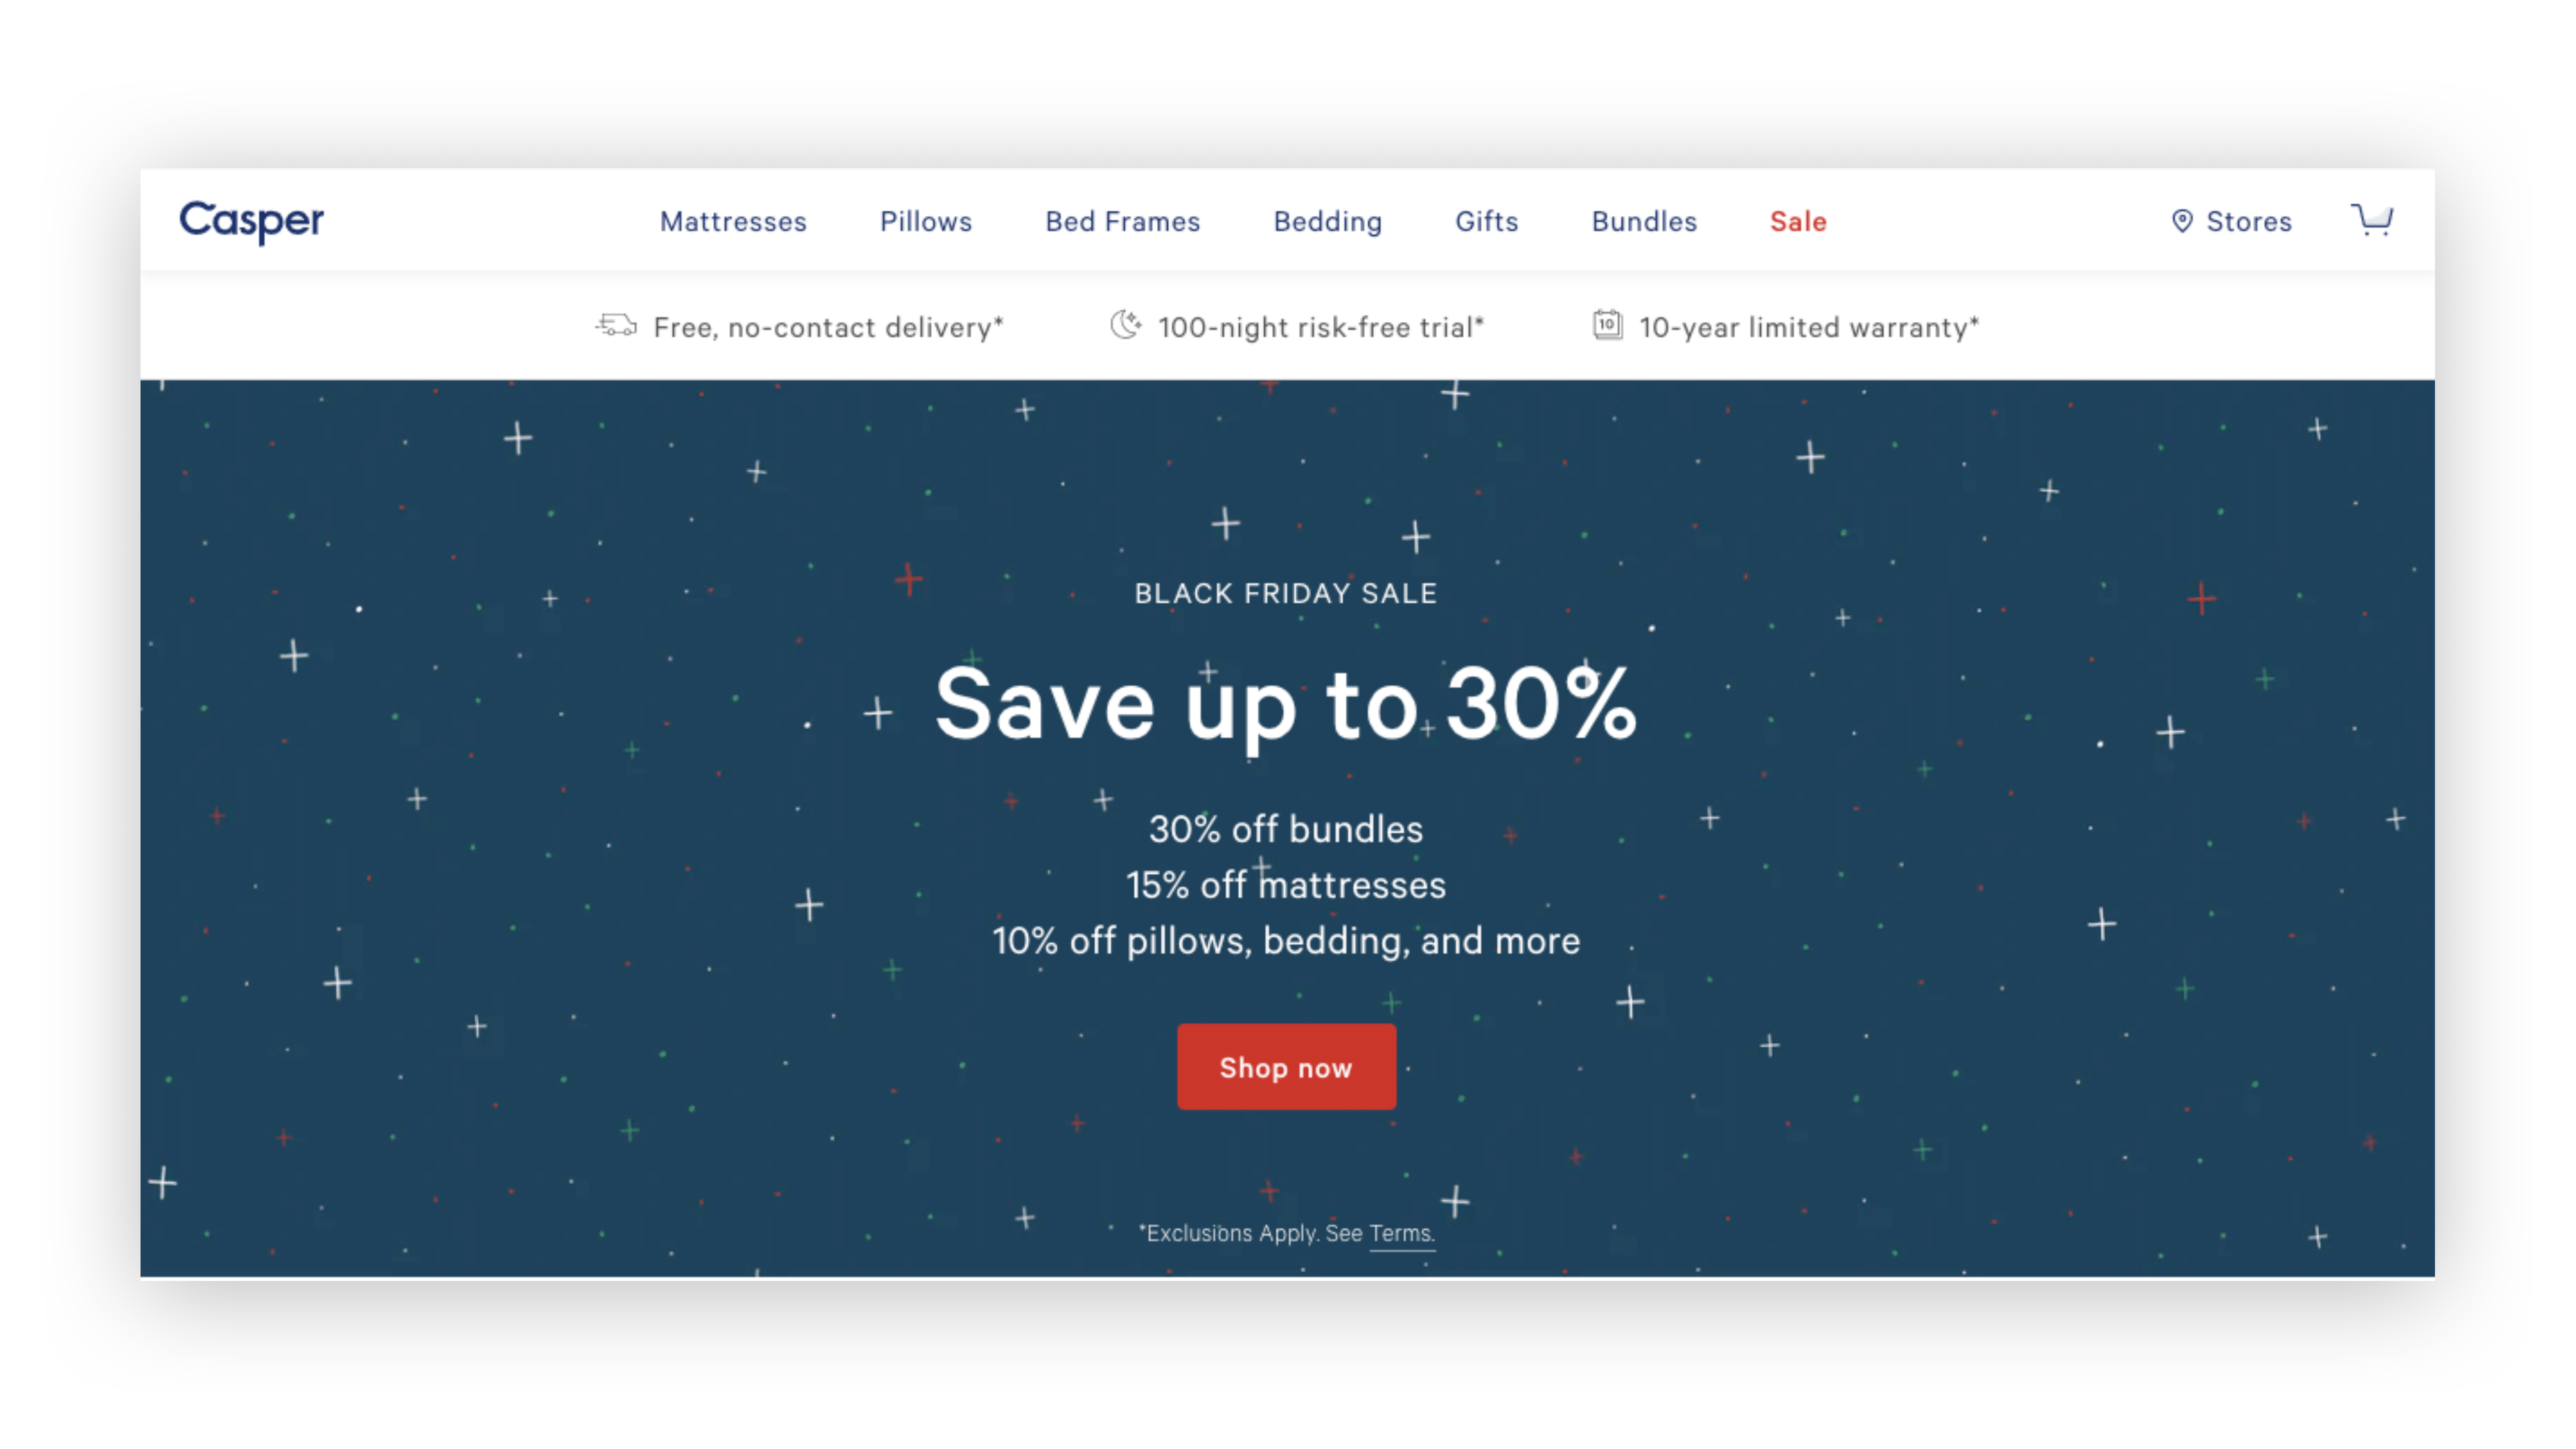 Digital agency on DTC strategy: Casper introduces incentivized pricing on their native website.